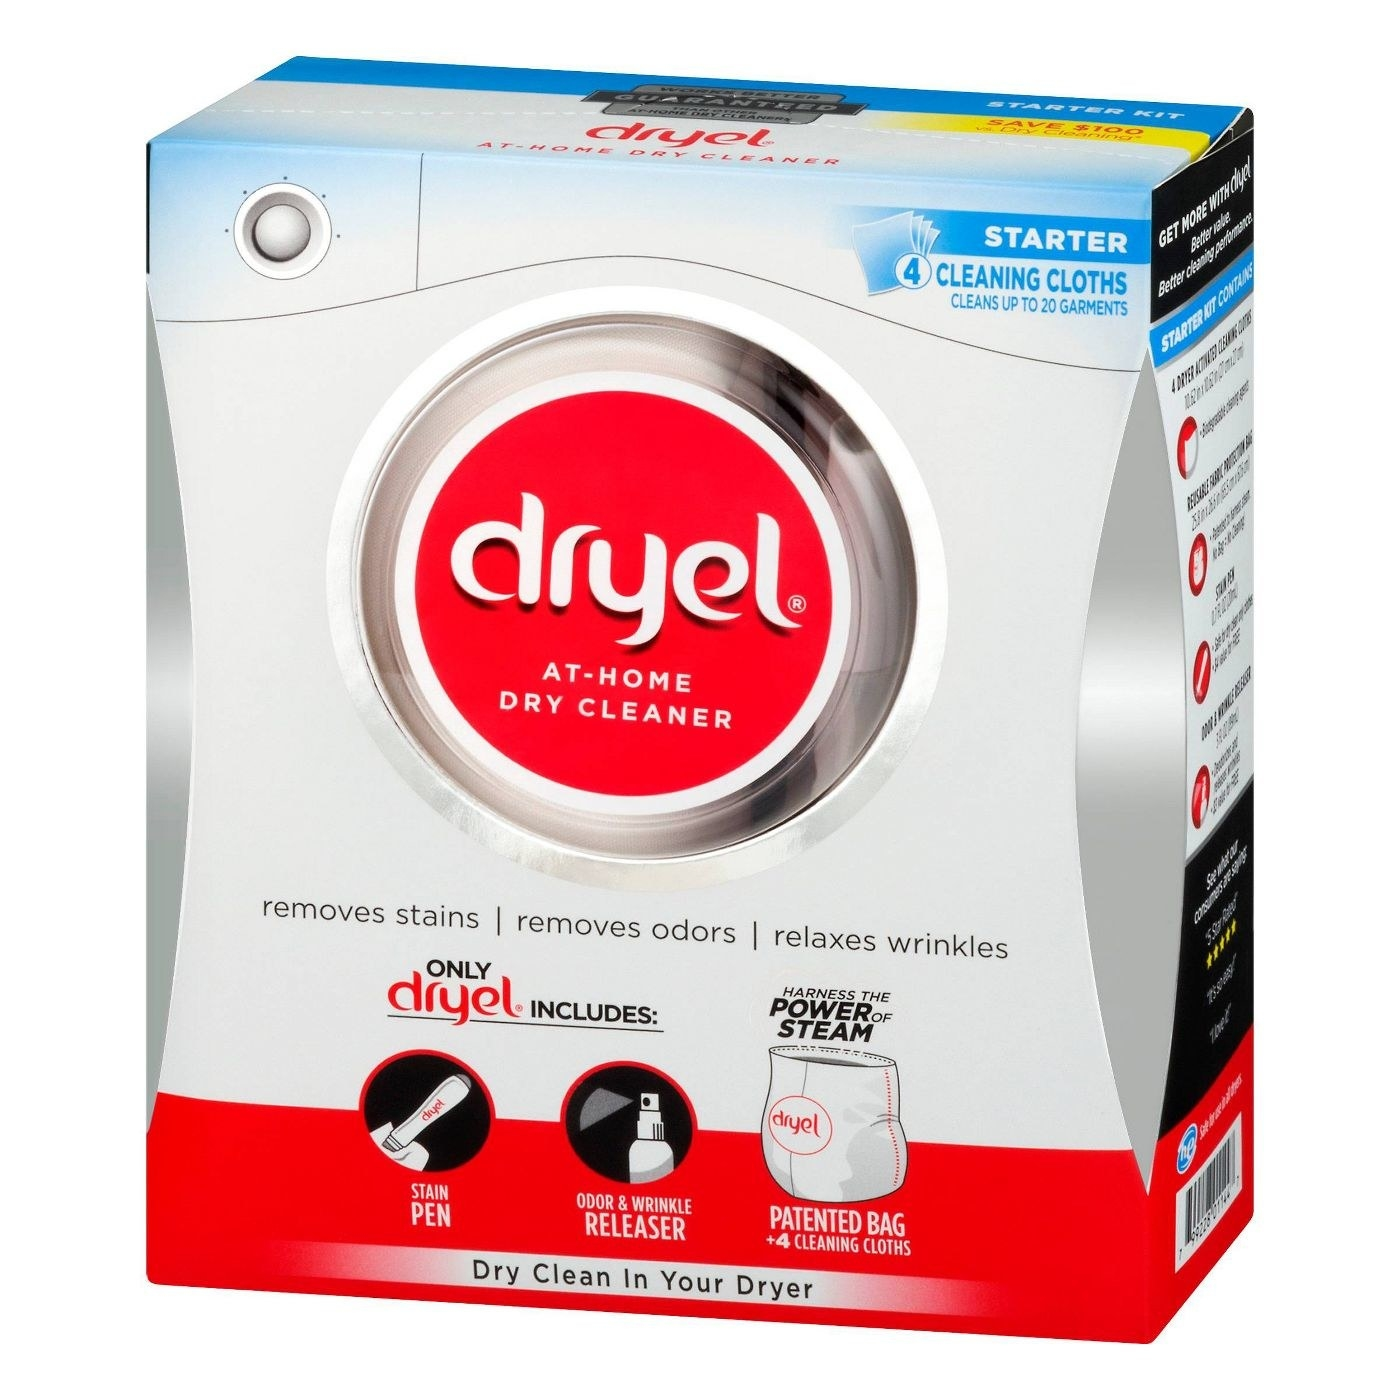 box of dryel at home cry cleaner